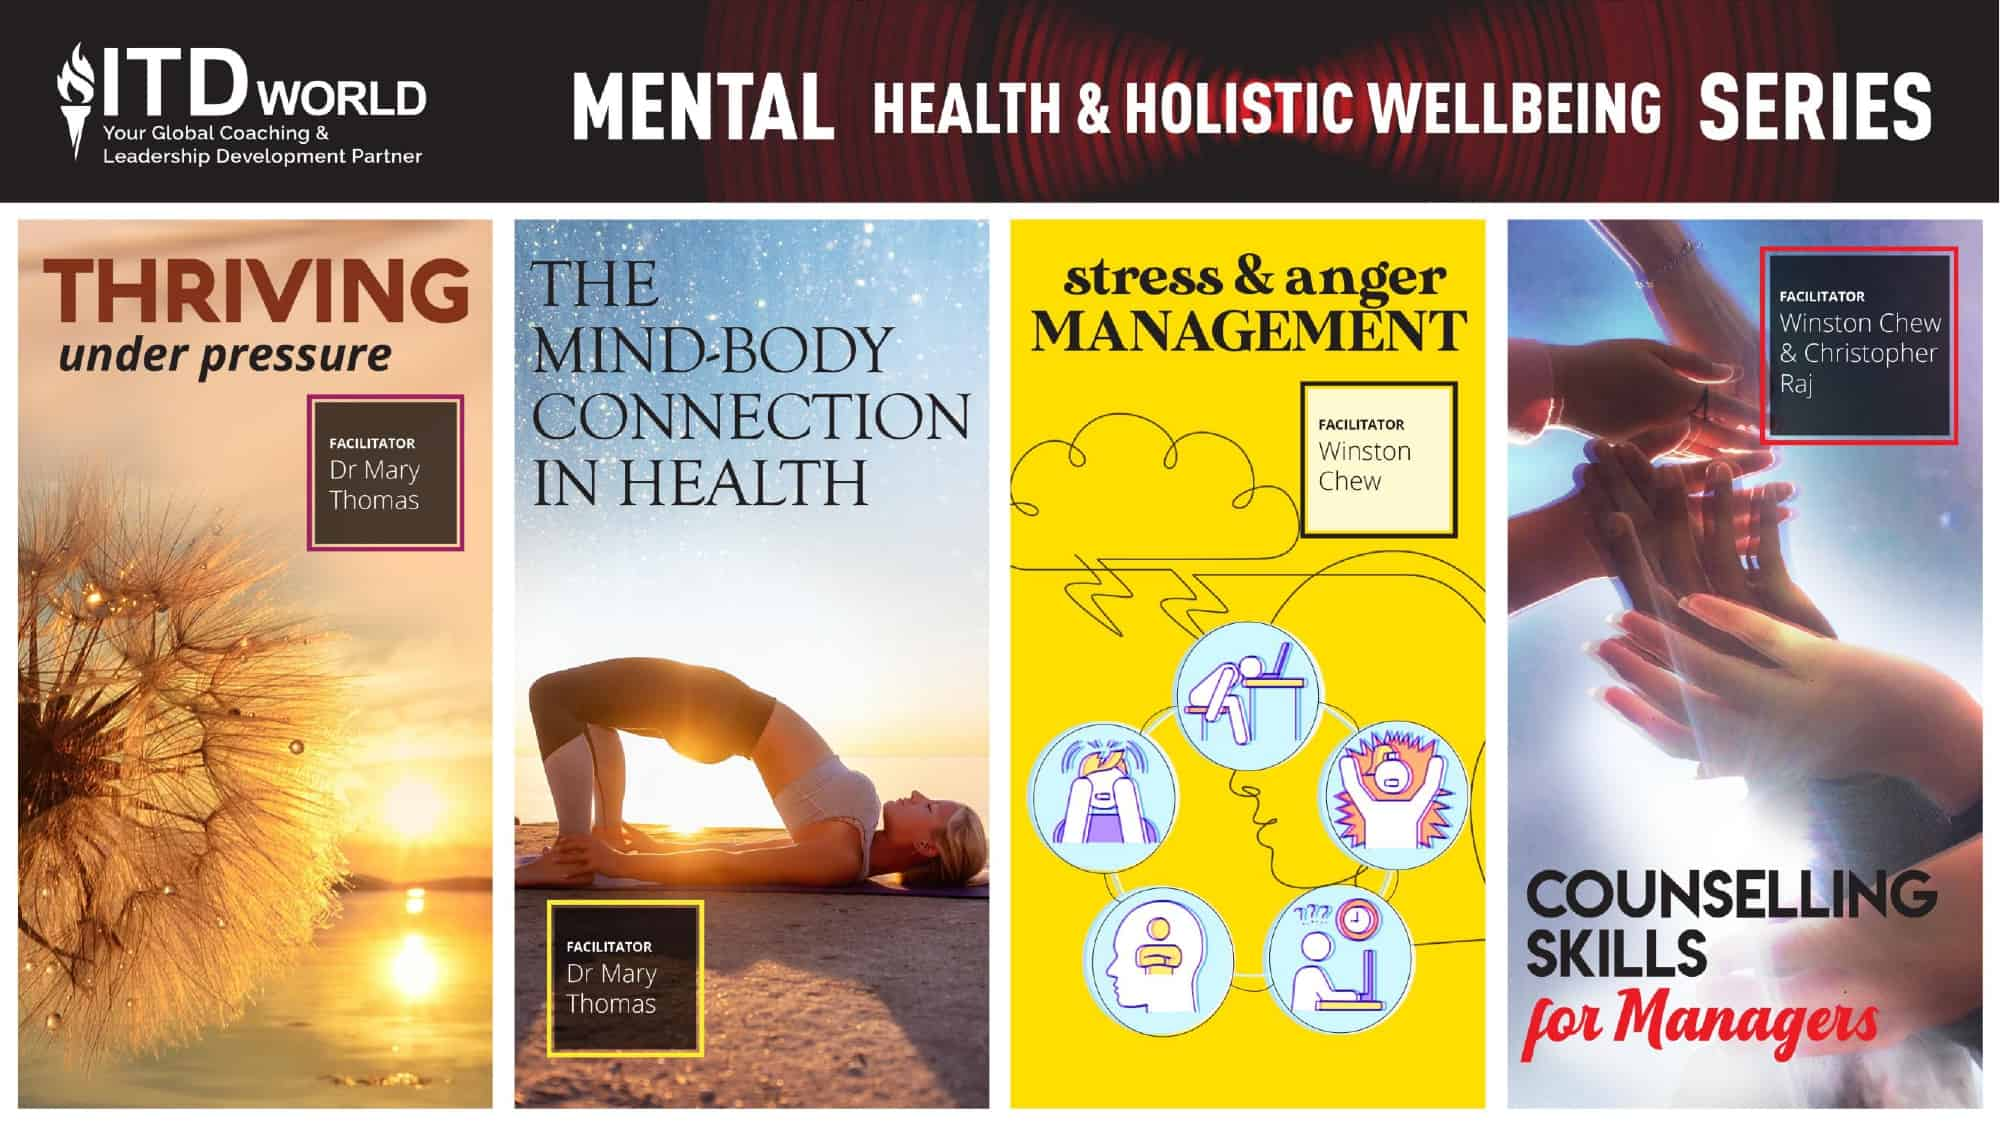 Mental health & Holistic well-being series